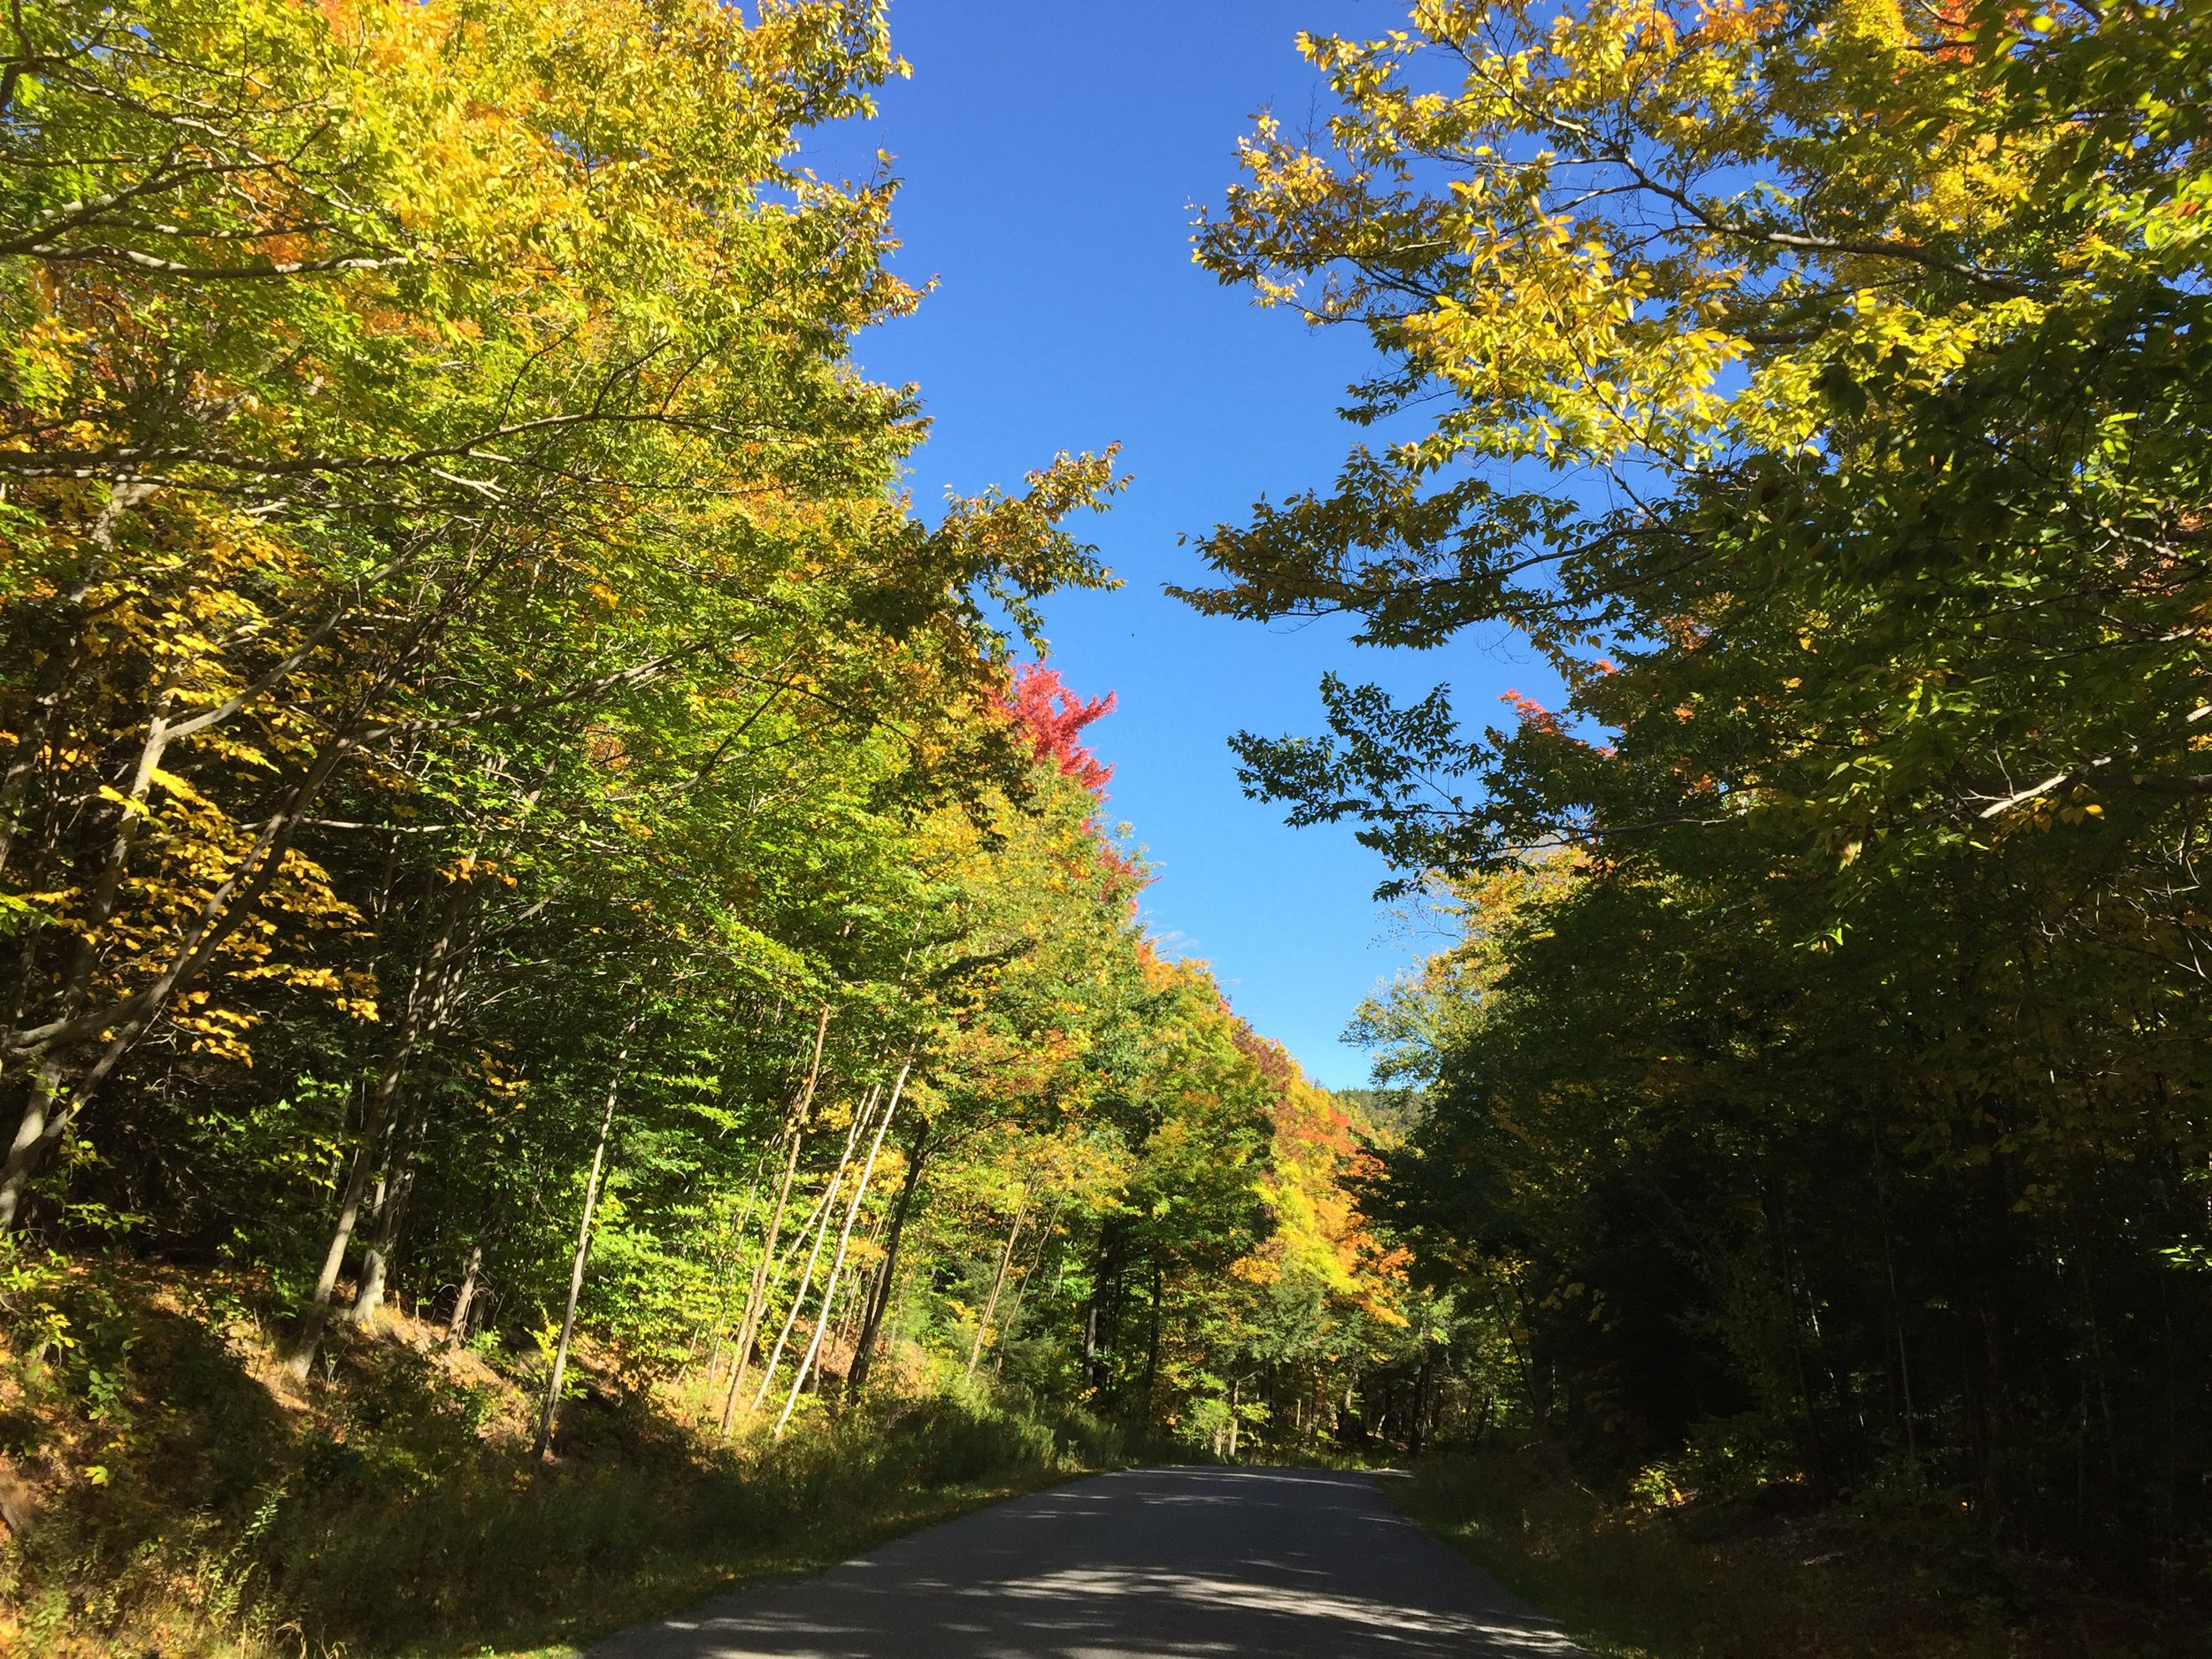 Fall foliage in the Catskills is amazing.